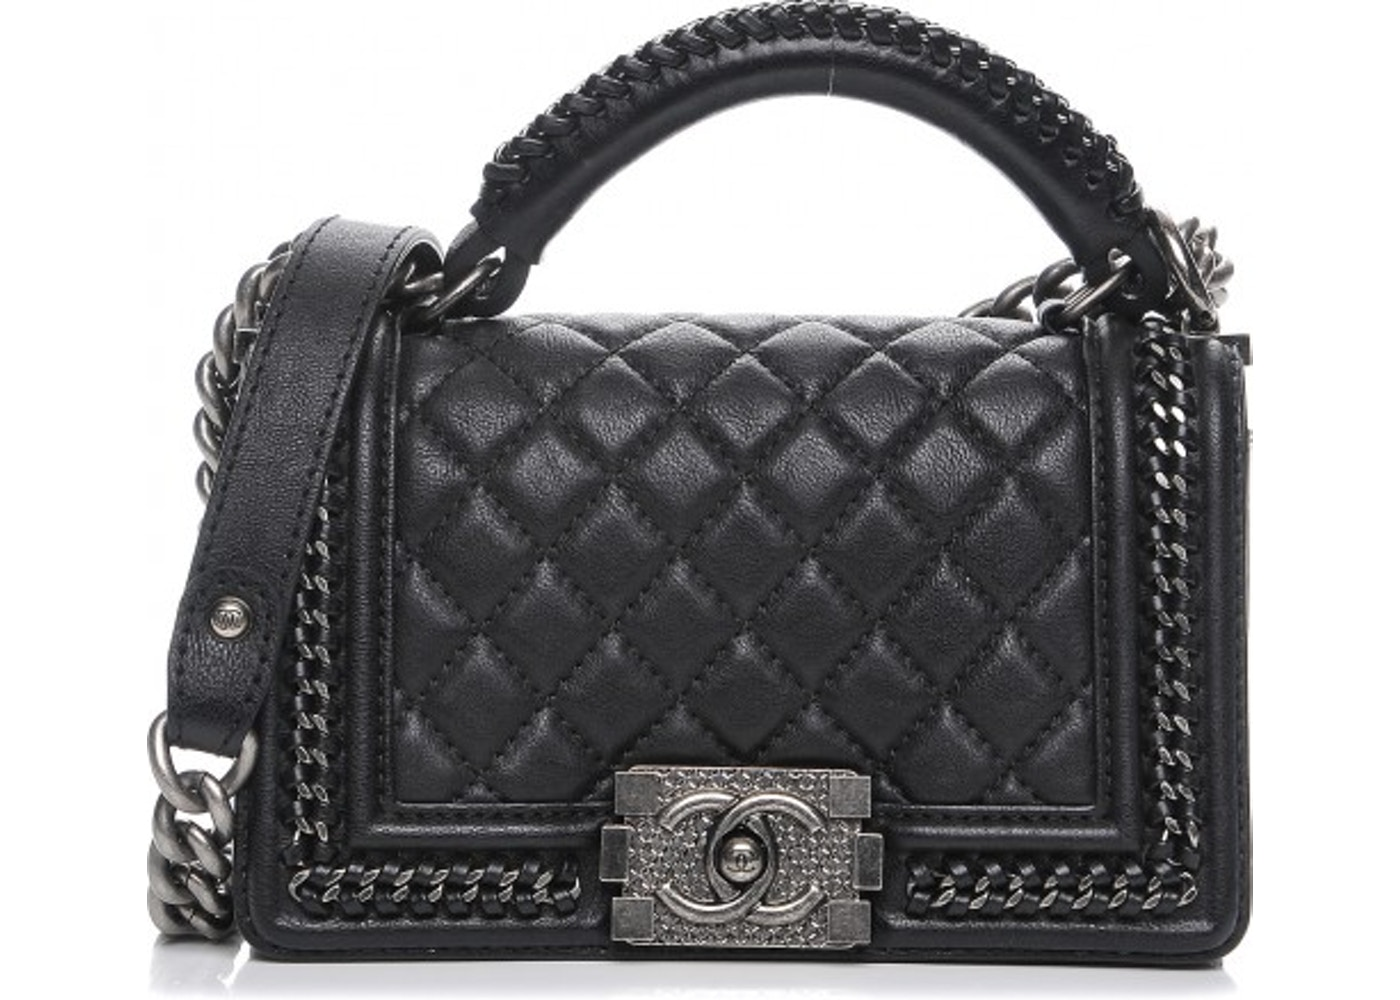 aed862f12943 Chanel Top Handle Boy Bag Flap Diamond Quilted Small Black. Diamond Quilted  Small Black